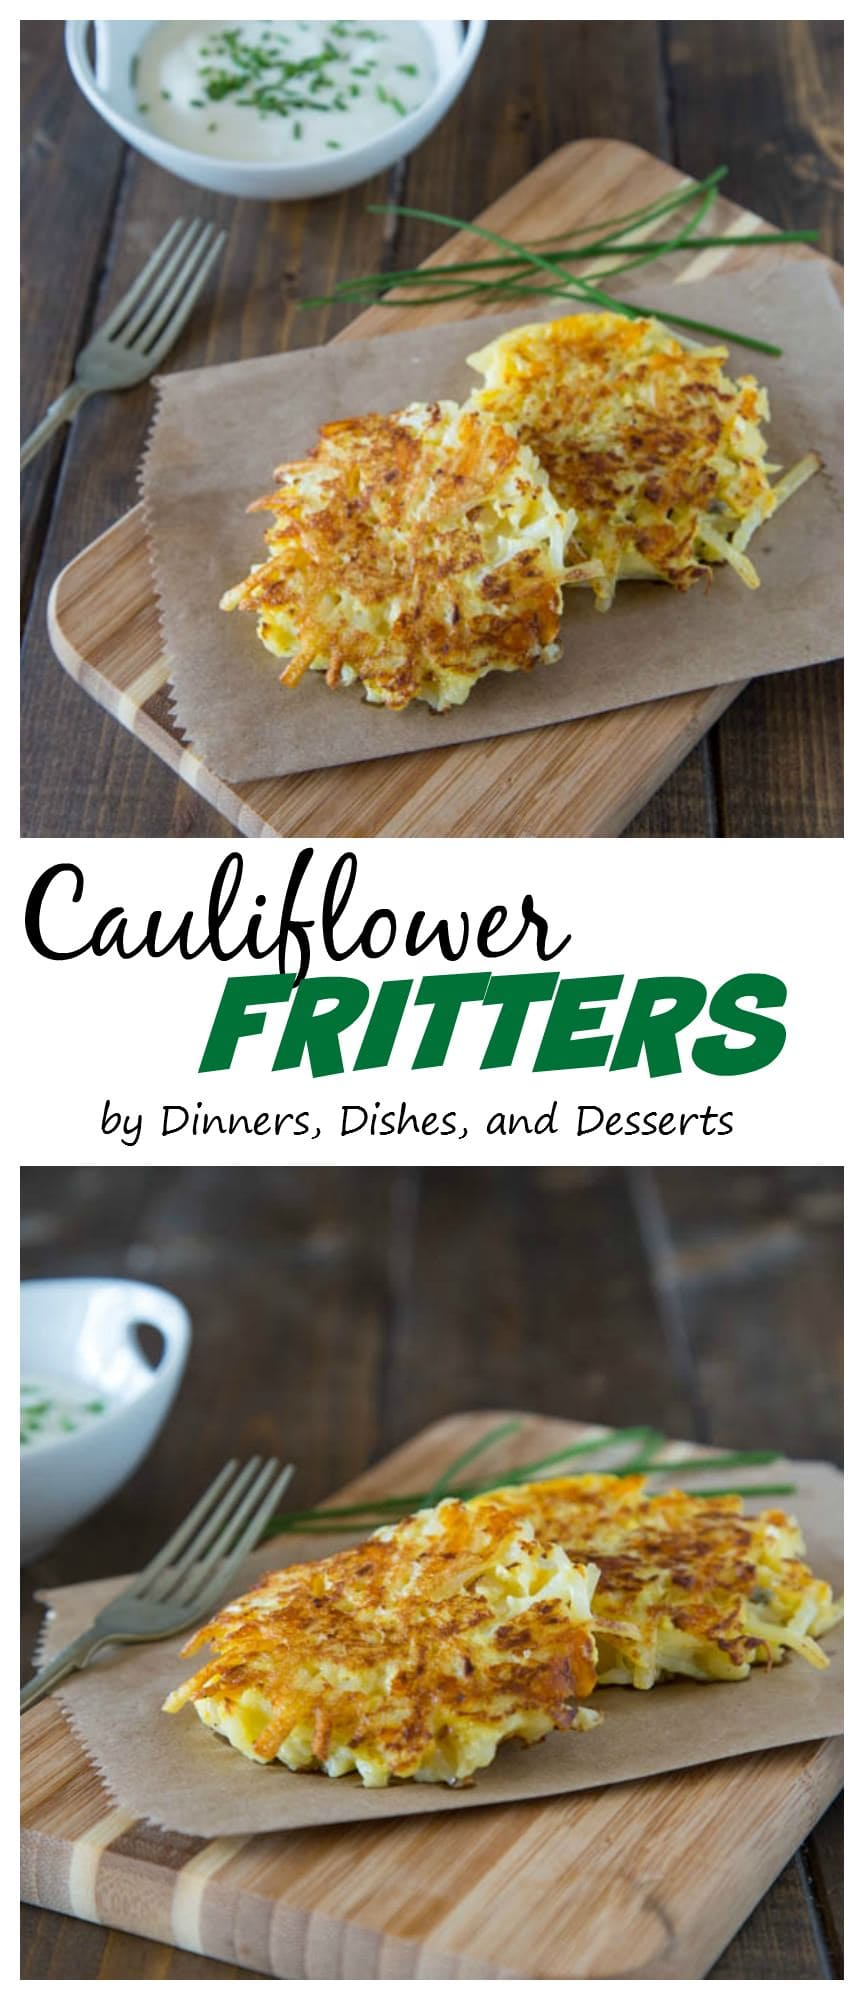 Crispy Cauliflower Fritters - Cauliflower and shredded potatoes come together to make super easy crispy fritters. You will never be able to tell the cauliflower is in there!